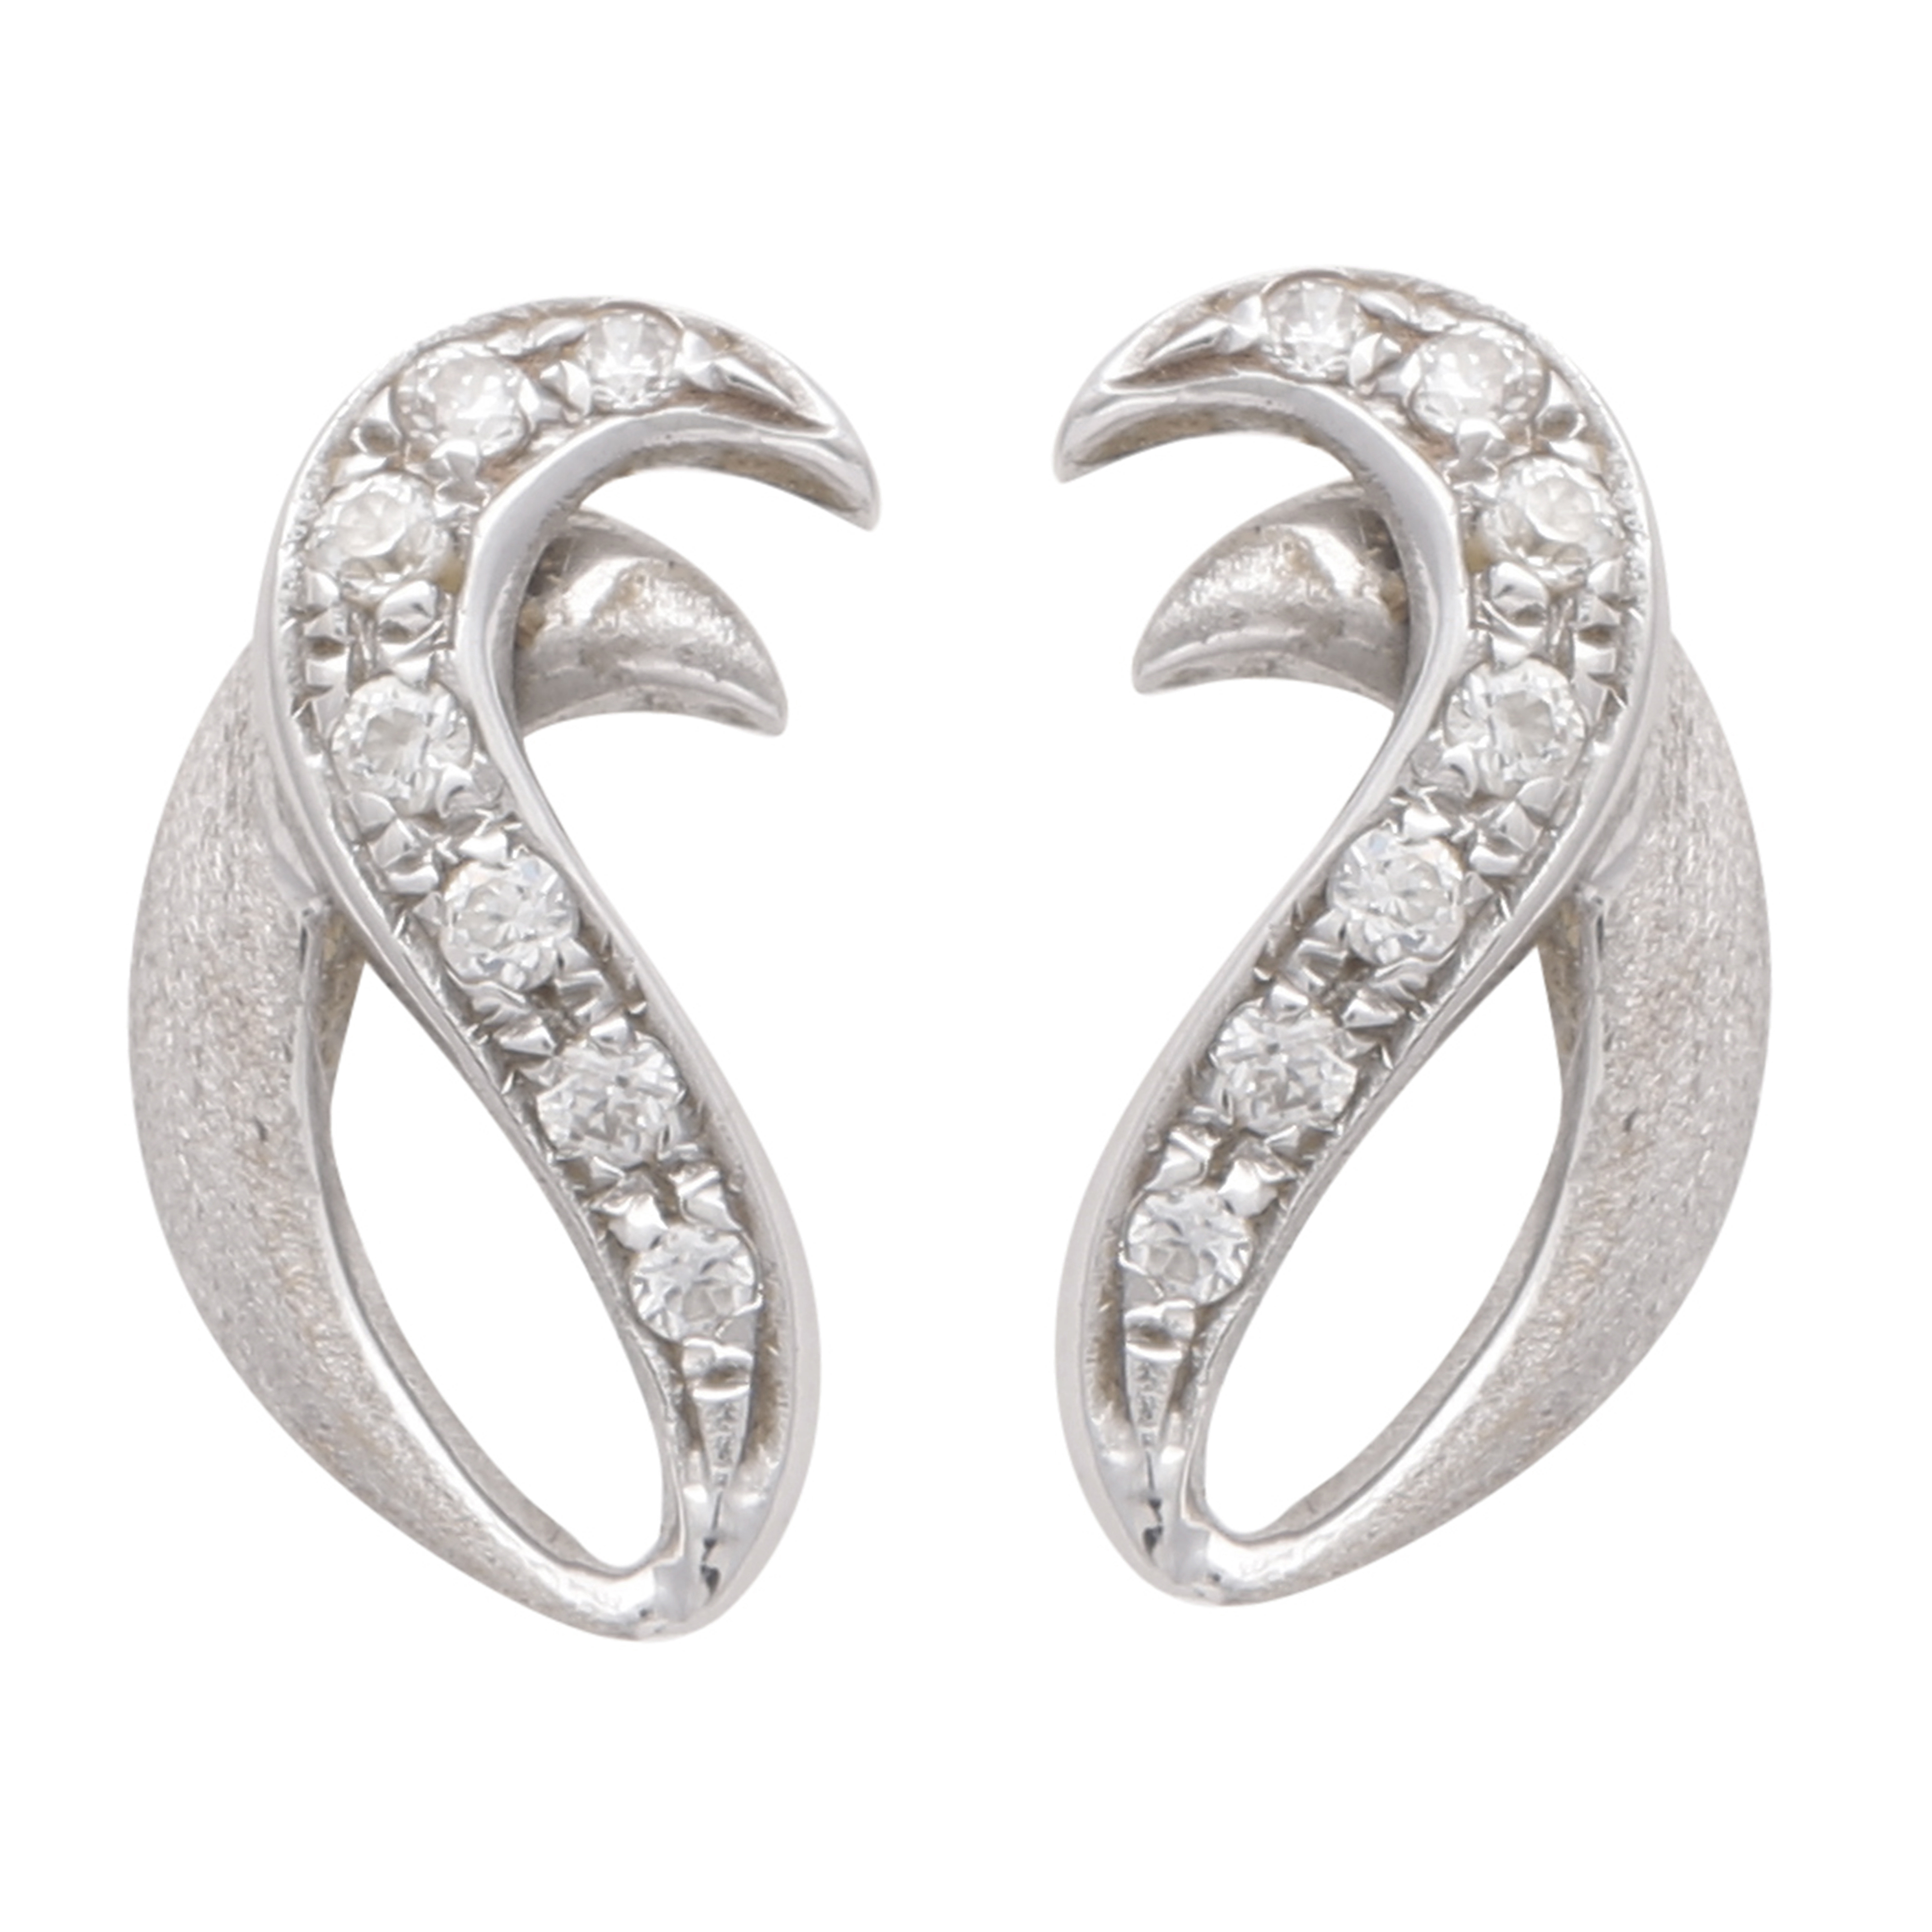 Los 203 - A pair of Italian gem set stud earrings in 18ct white gold, each designed as two overlapping